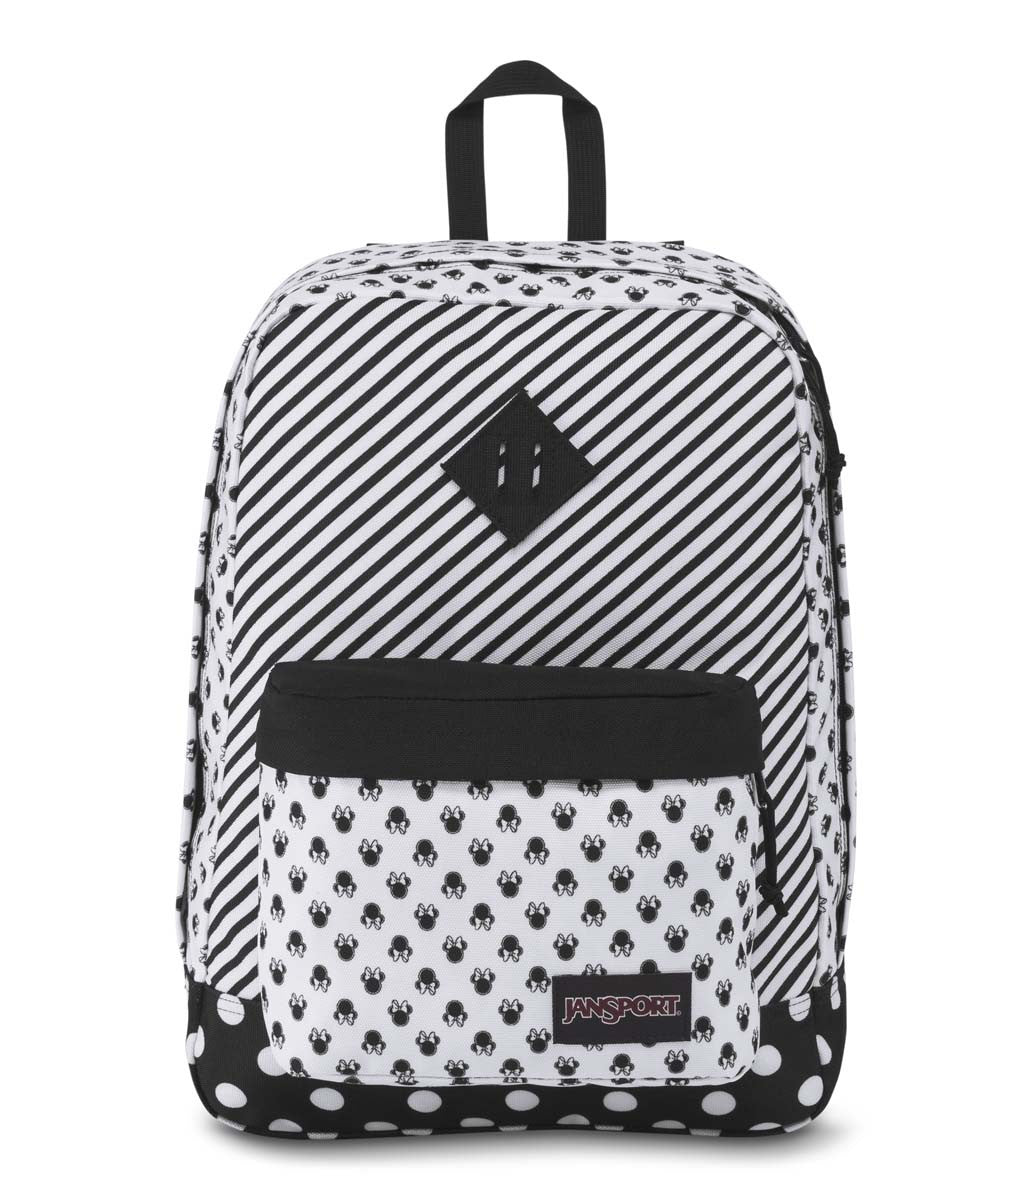 a8616aecd2a Jansport Disney Super Fx 25l Backpack